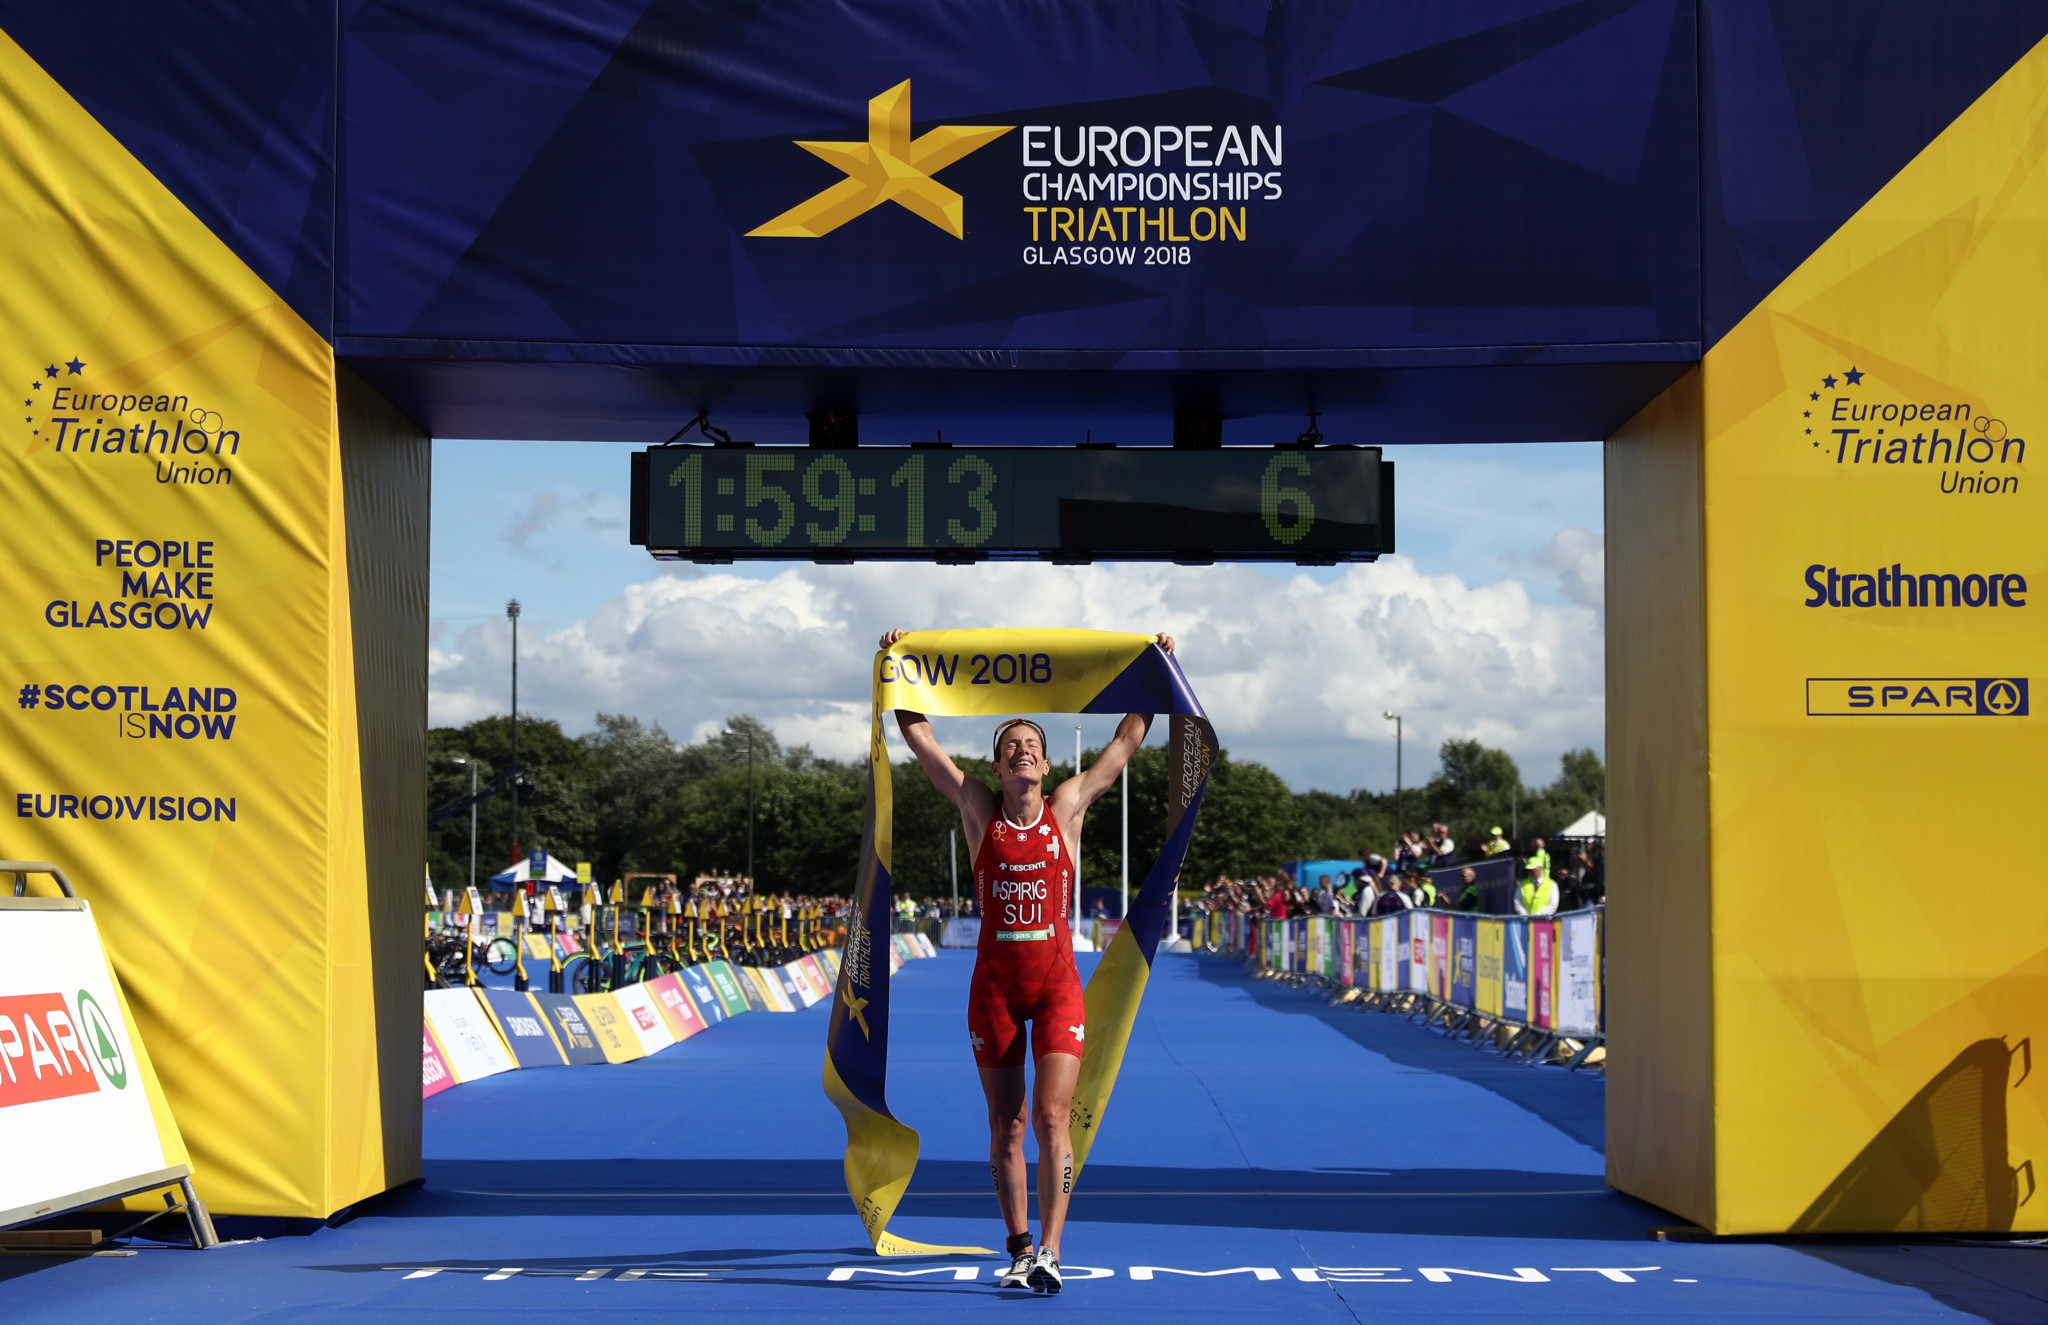 Nicola Spirig won the women's European triathlon title for a sixth time ©Getty Images